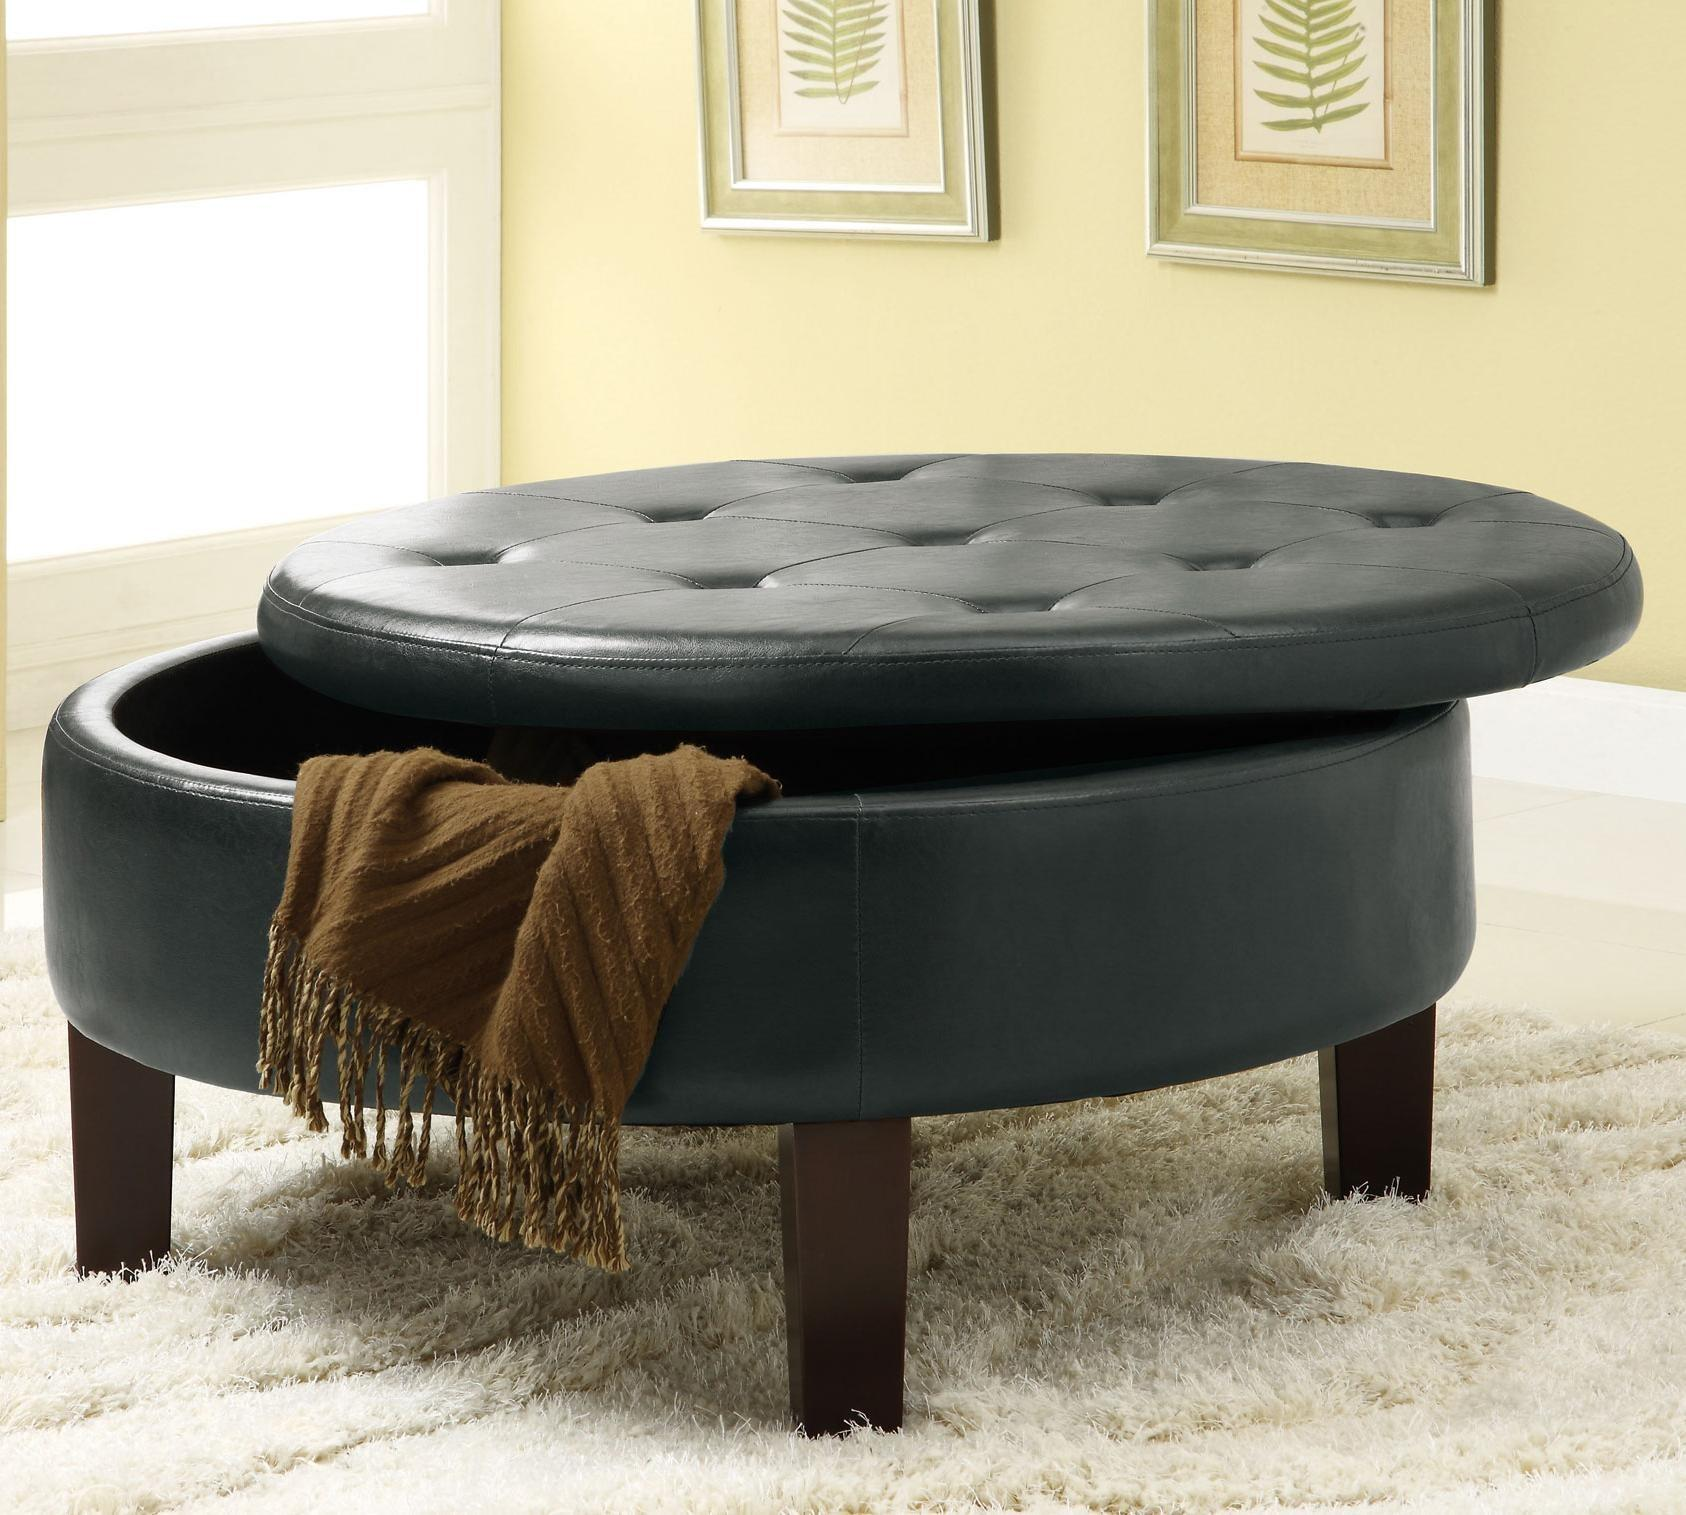 Living Room Elegance Round Leather Ottoman Coffee Table